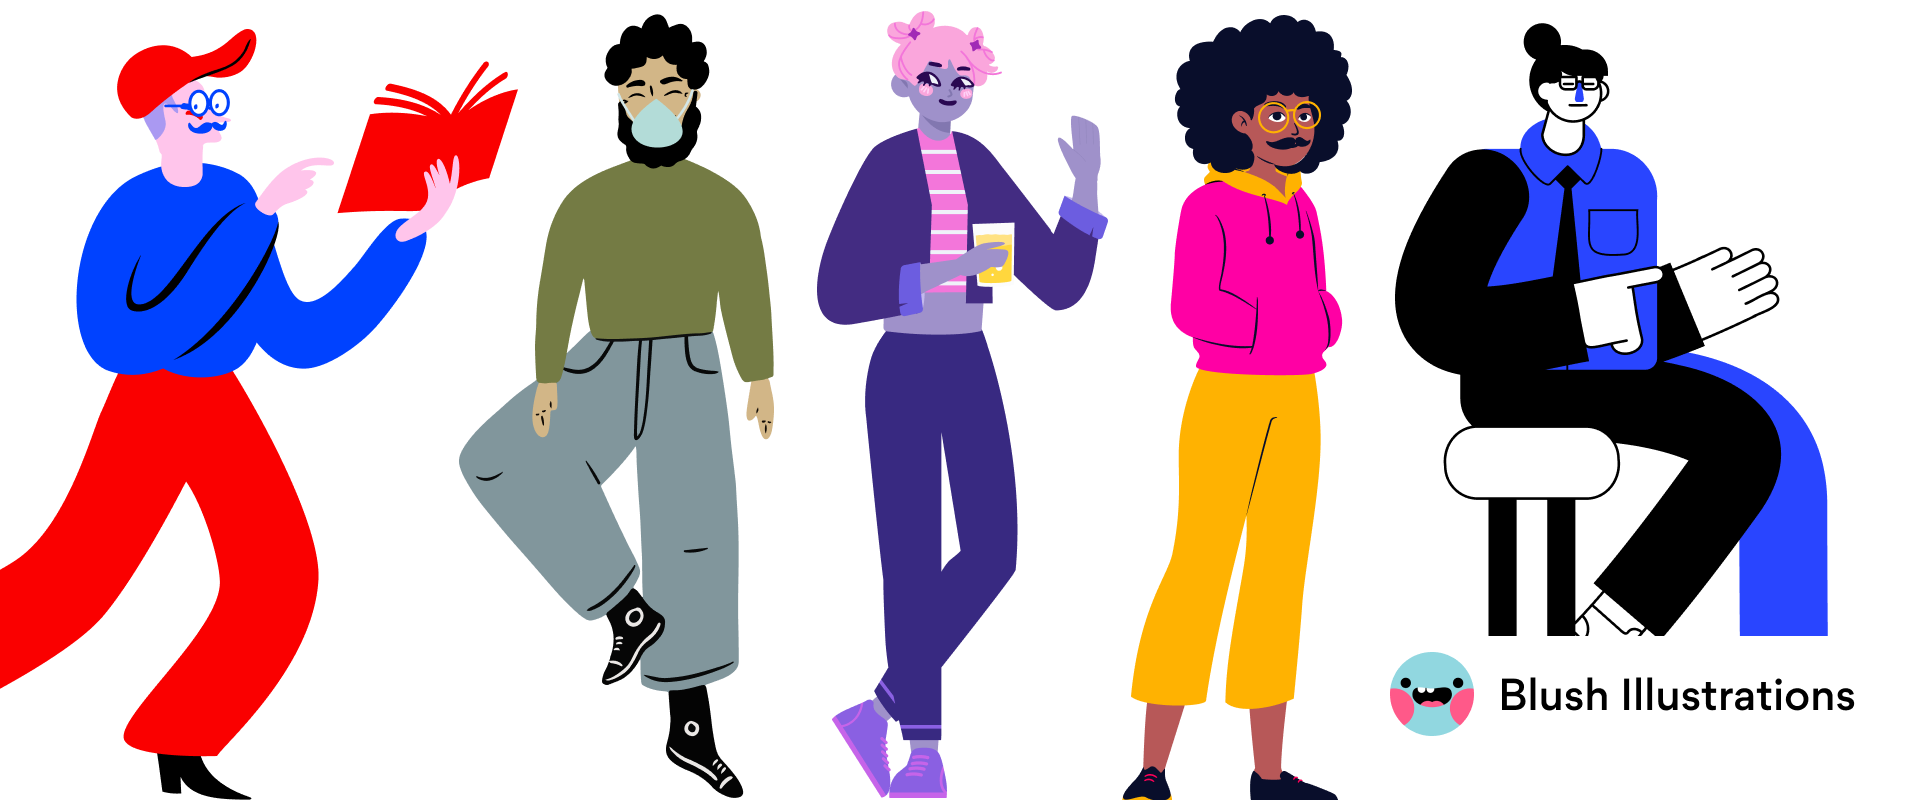 Doodle characters from different collections on Blush